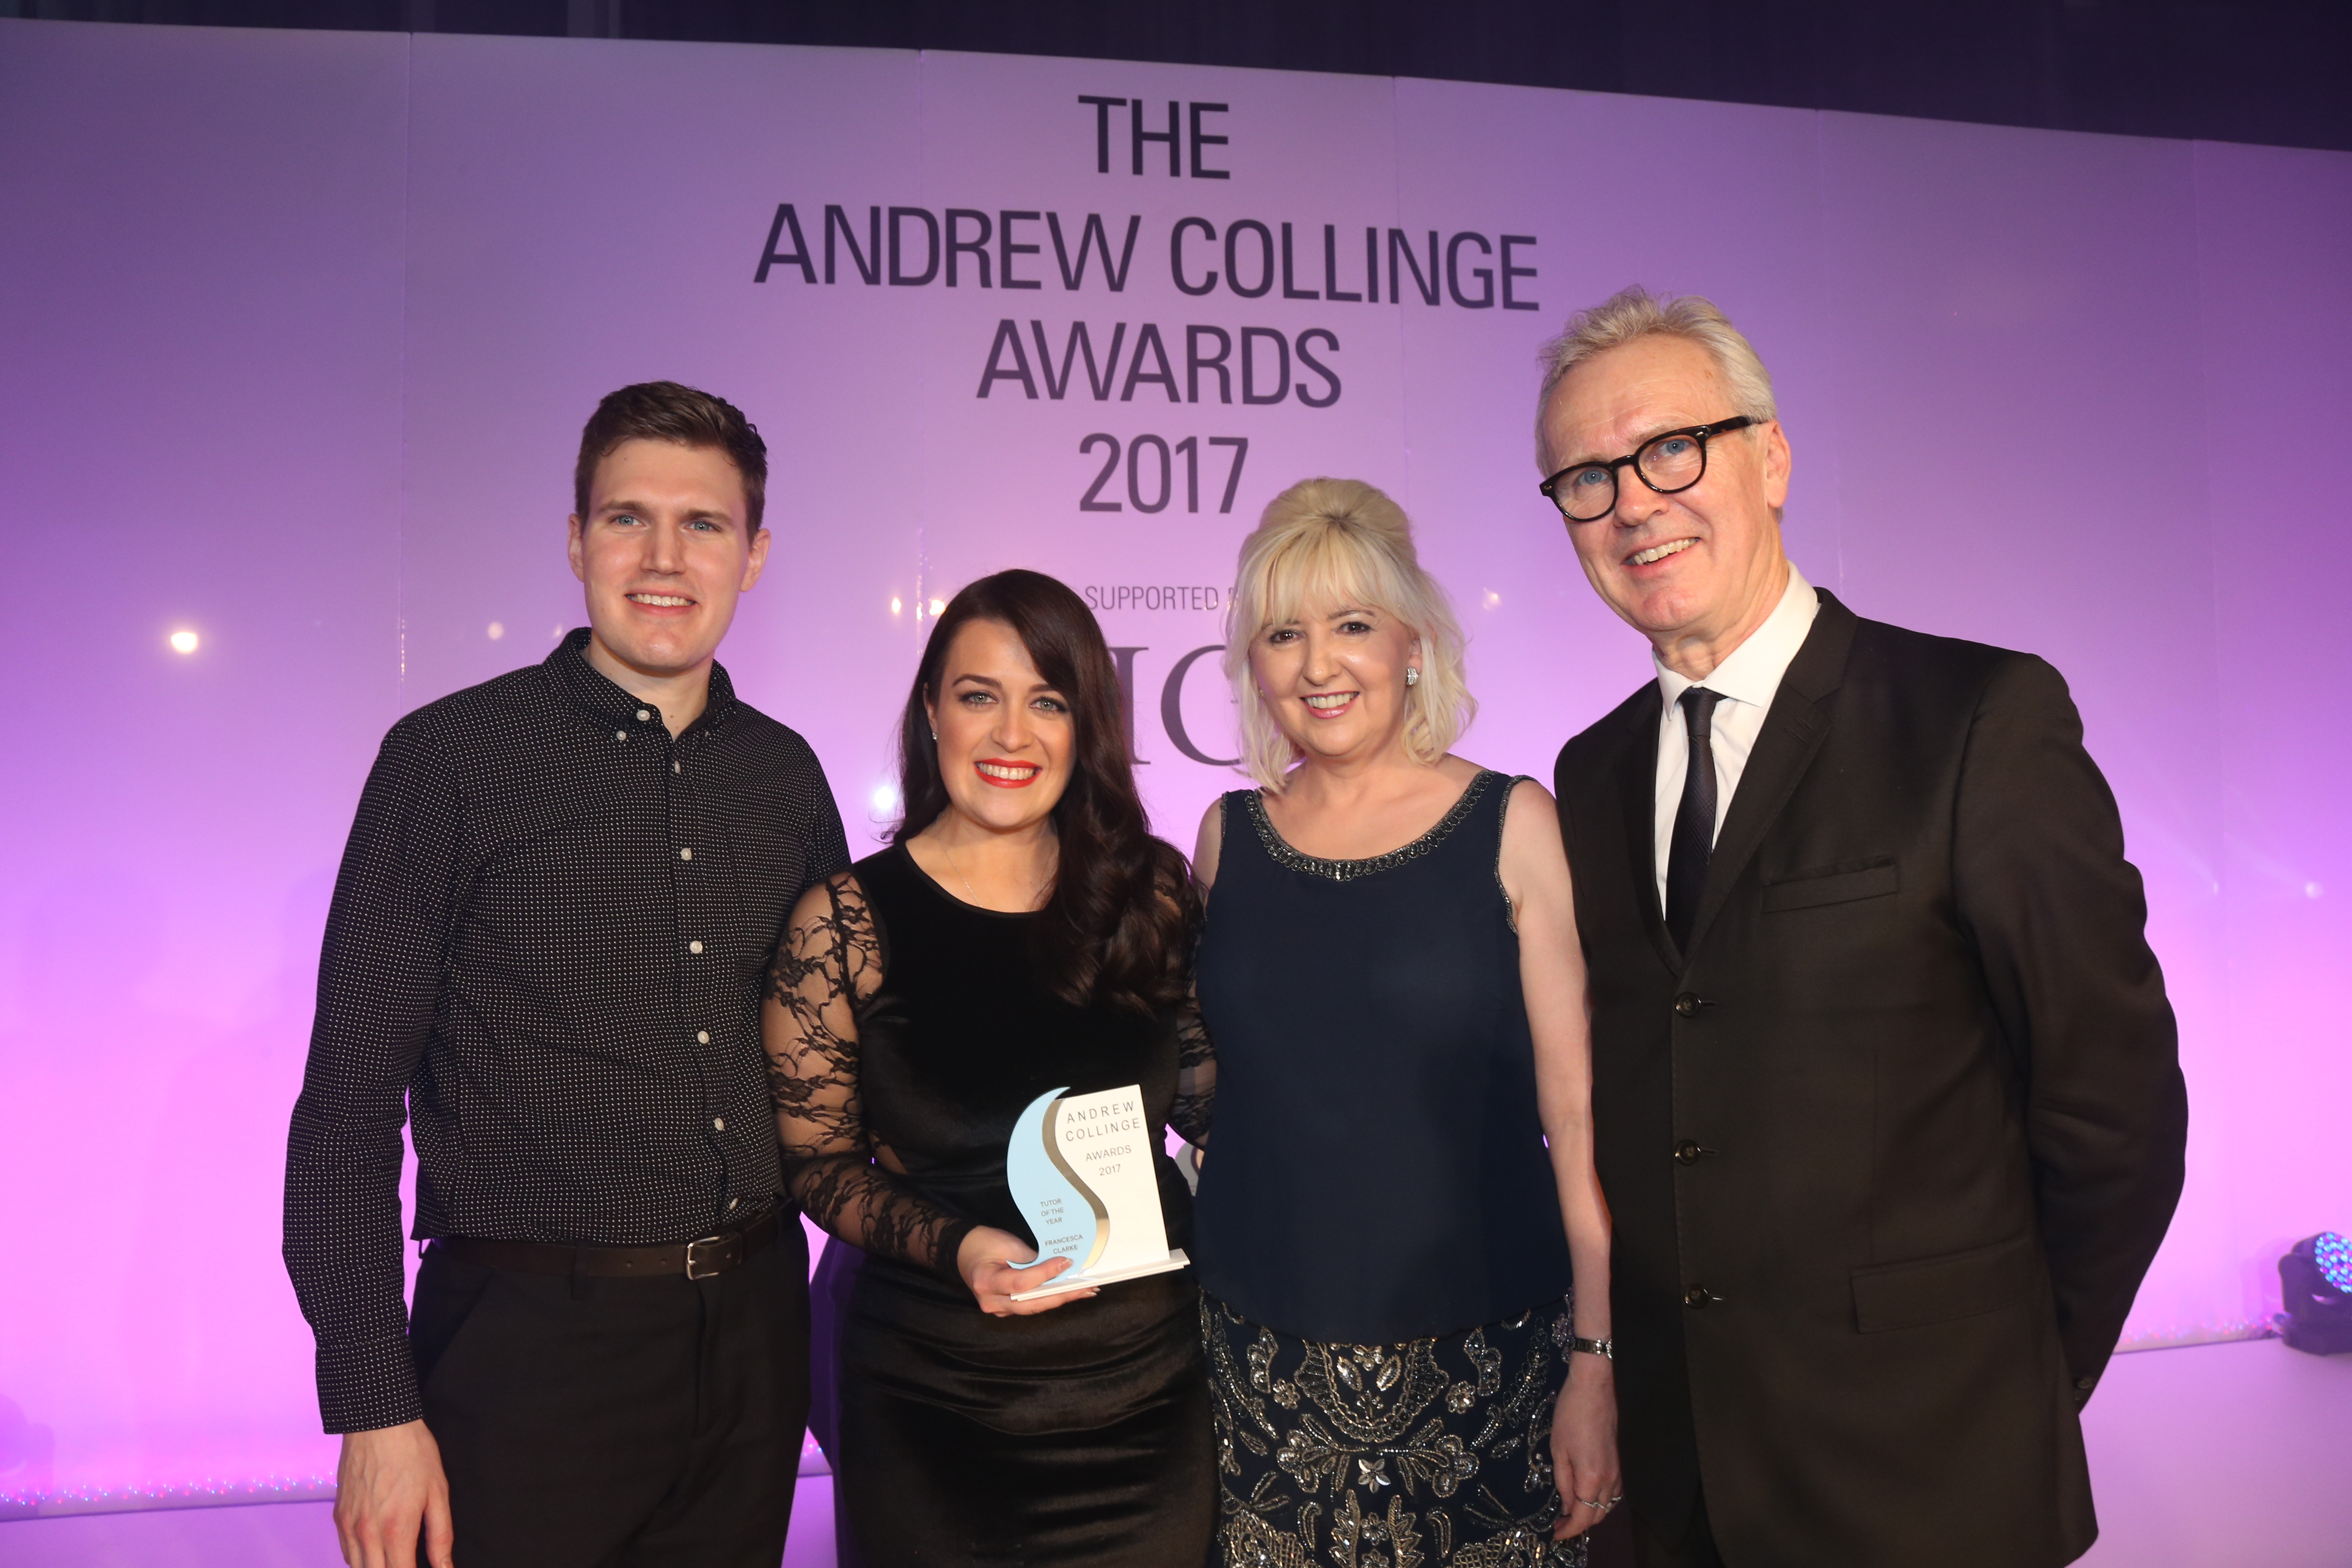 Francesca Clarke, Andrew Collinge Hairdressing Tutor of the Year